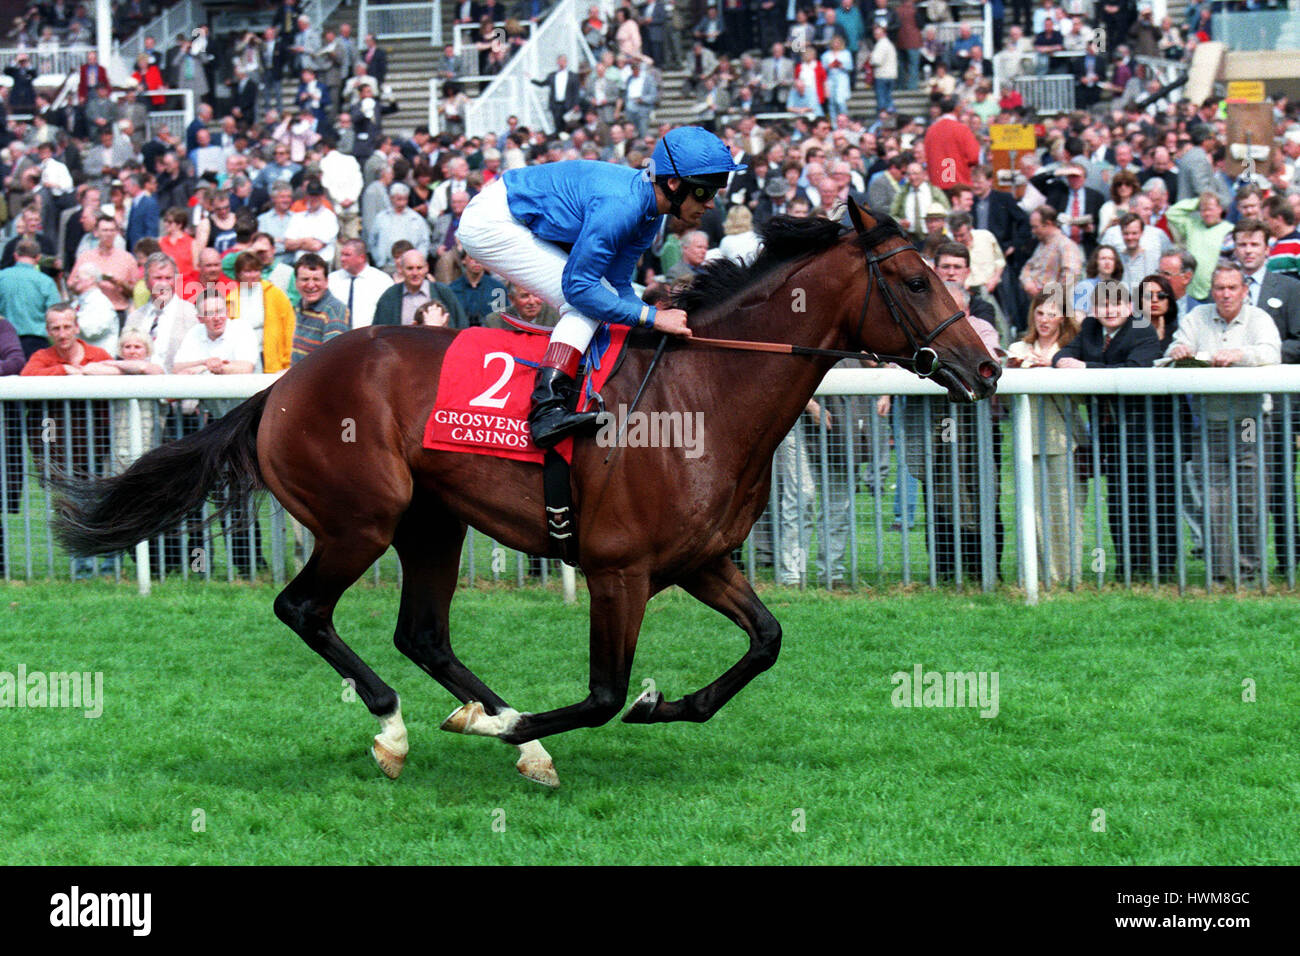 CITY HONOURS RIDDEN BY L.DETTORI 14 May 1998 - Stock Image